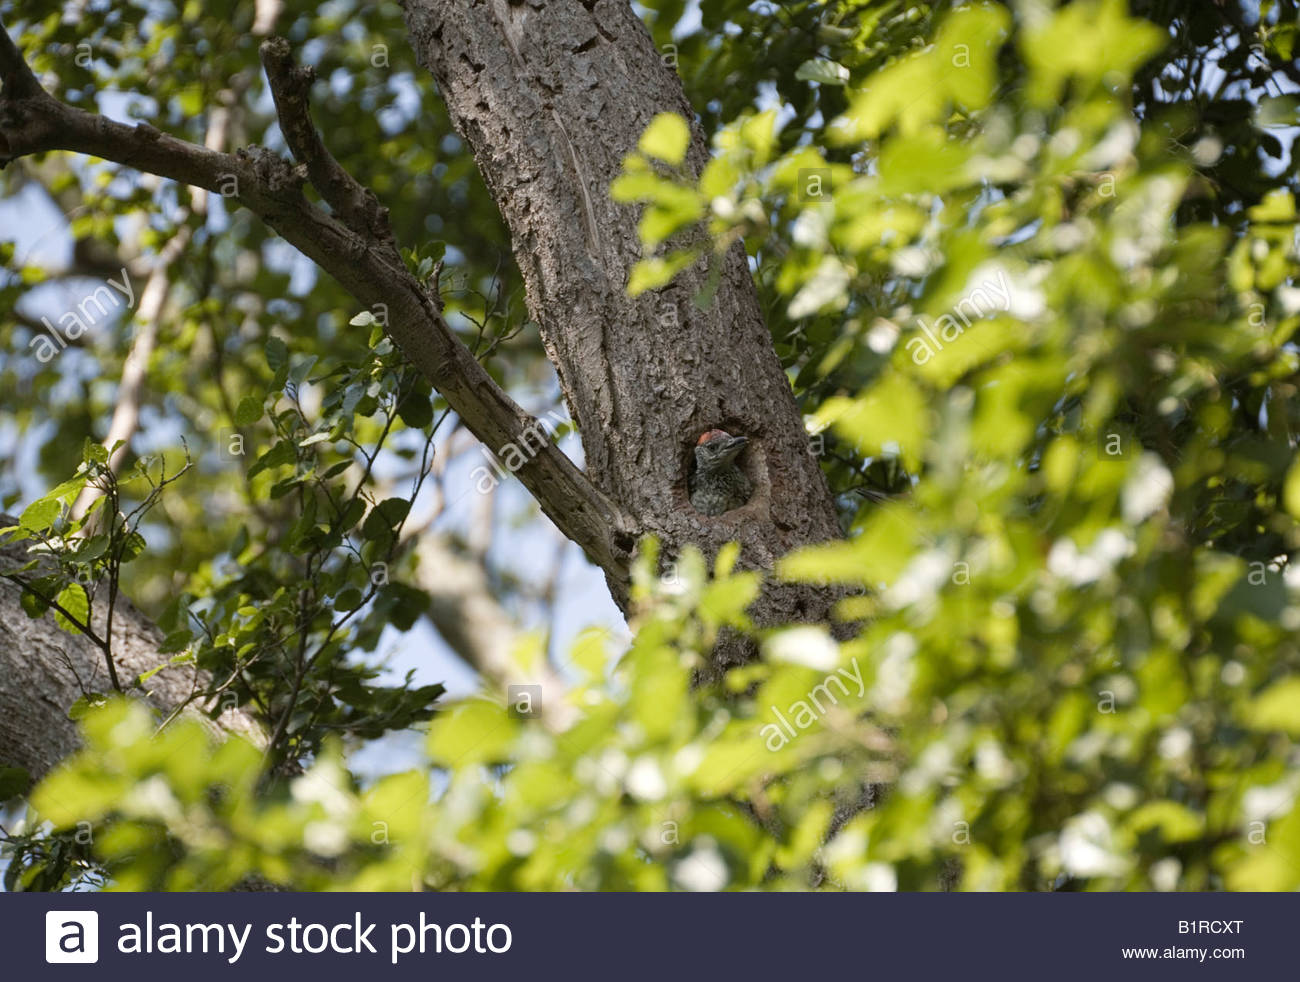 Green woodpecker chick at nest hole awaiting food Picus Viridis Picidae - Stock Image